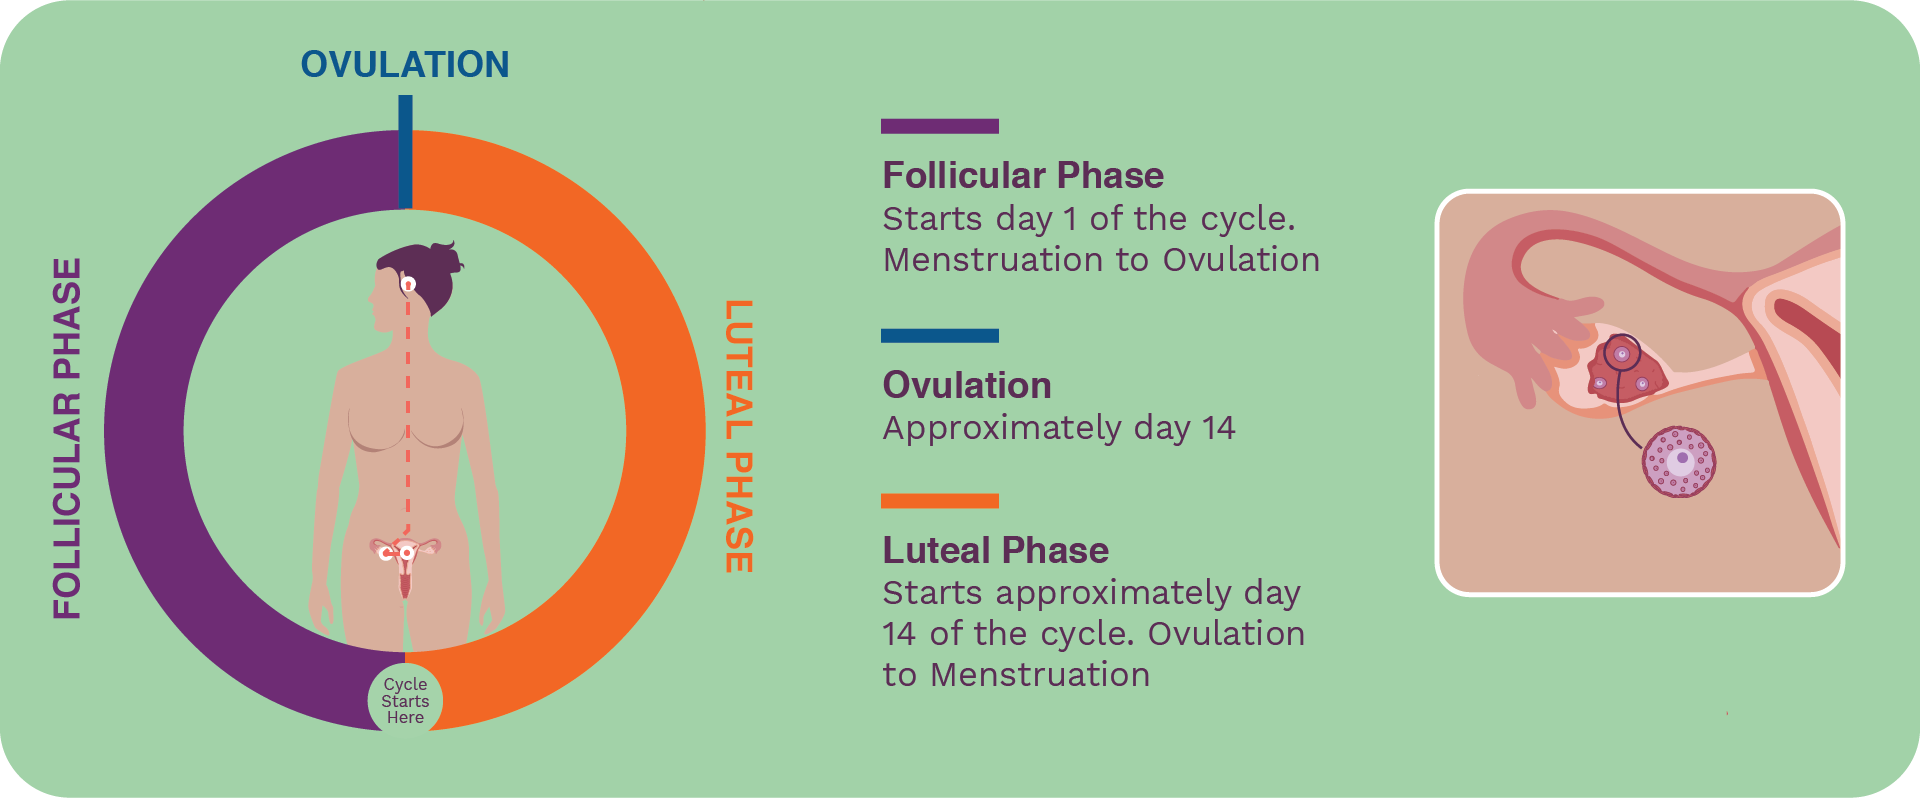 Seed-cycle-blend-ready-to-use-seed-cycling-ovarian-cycle.